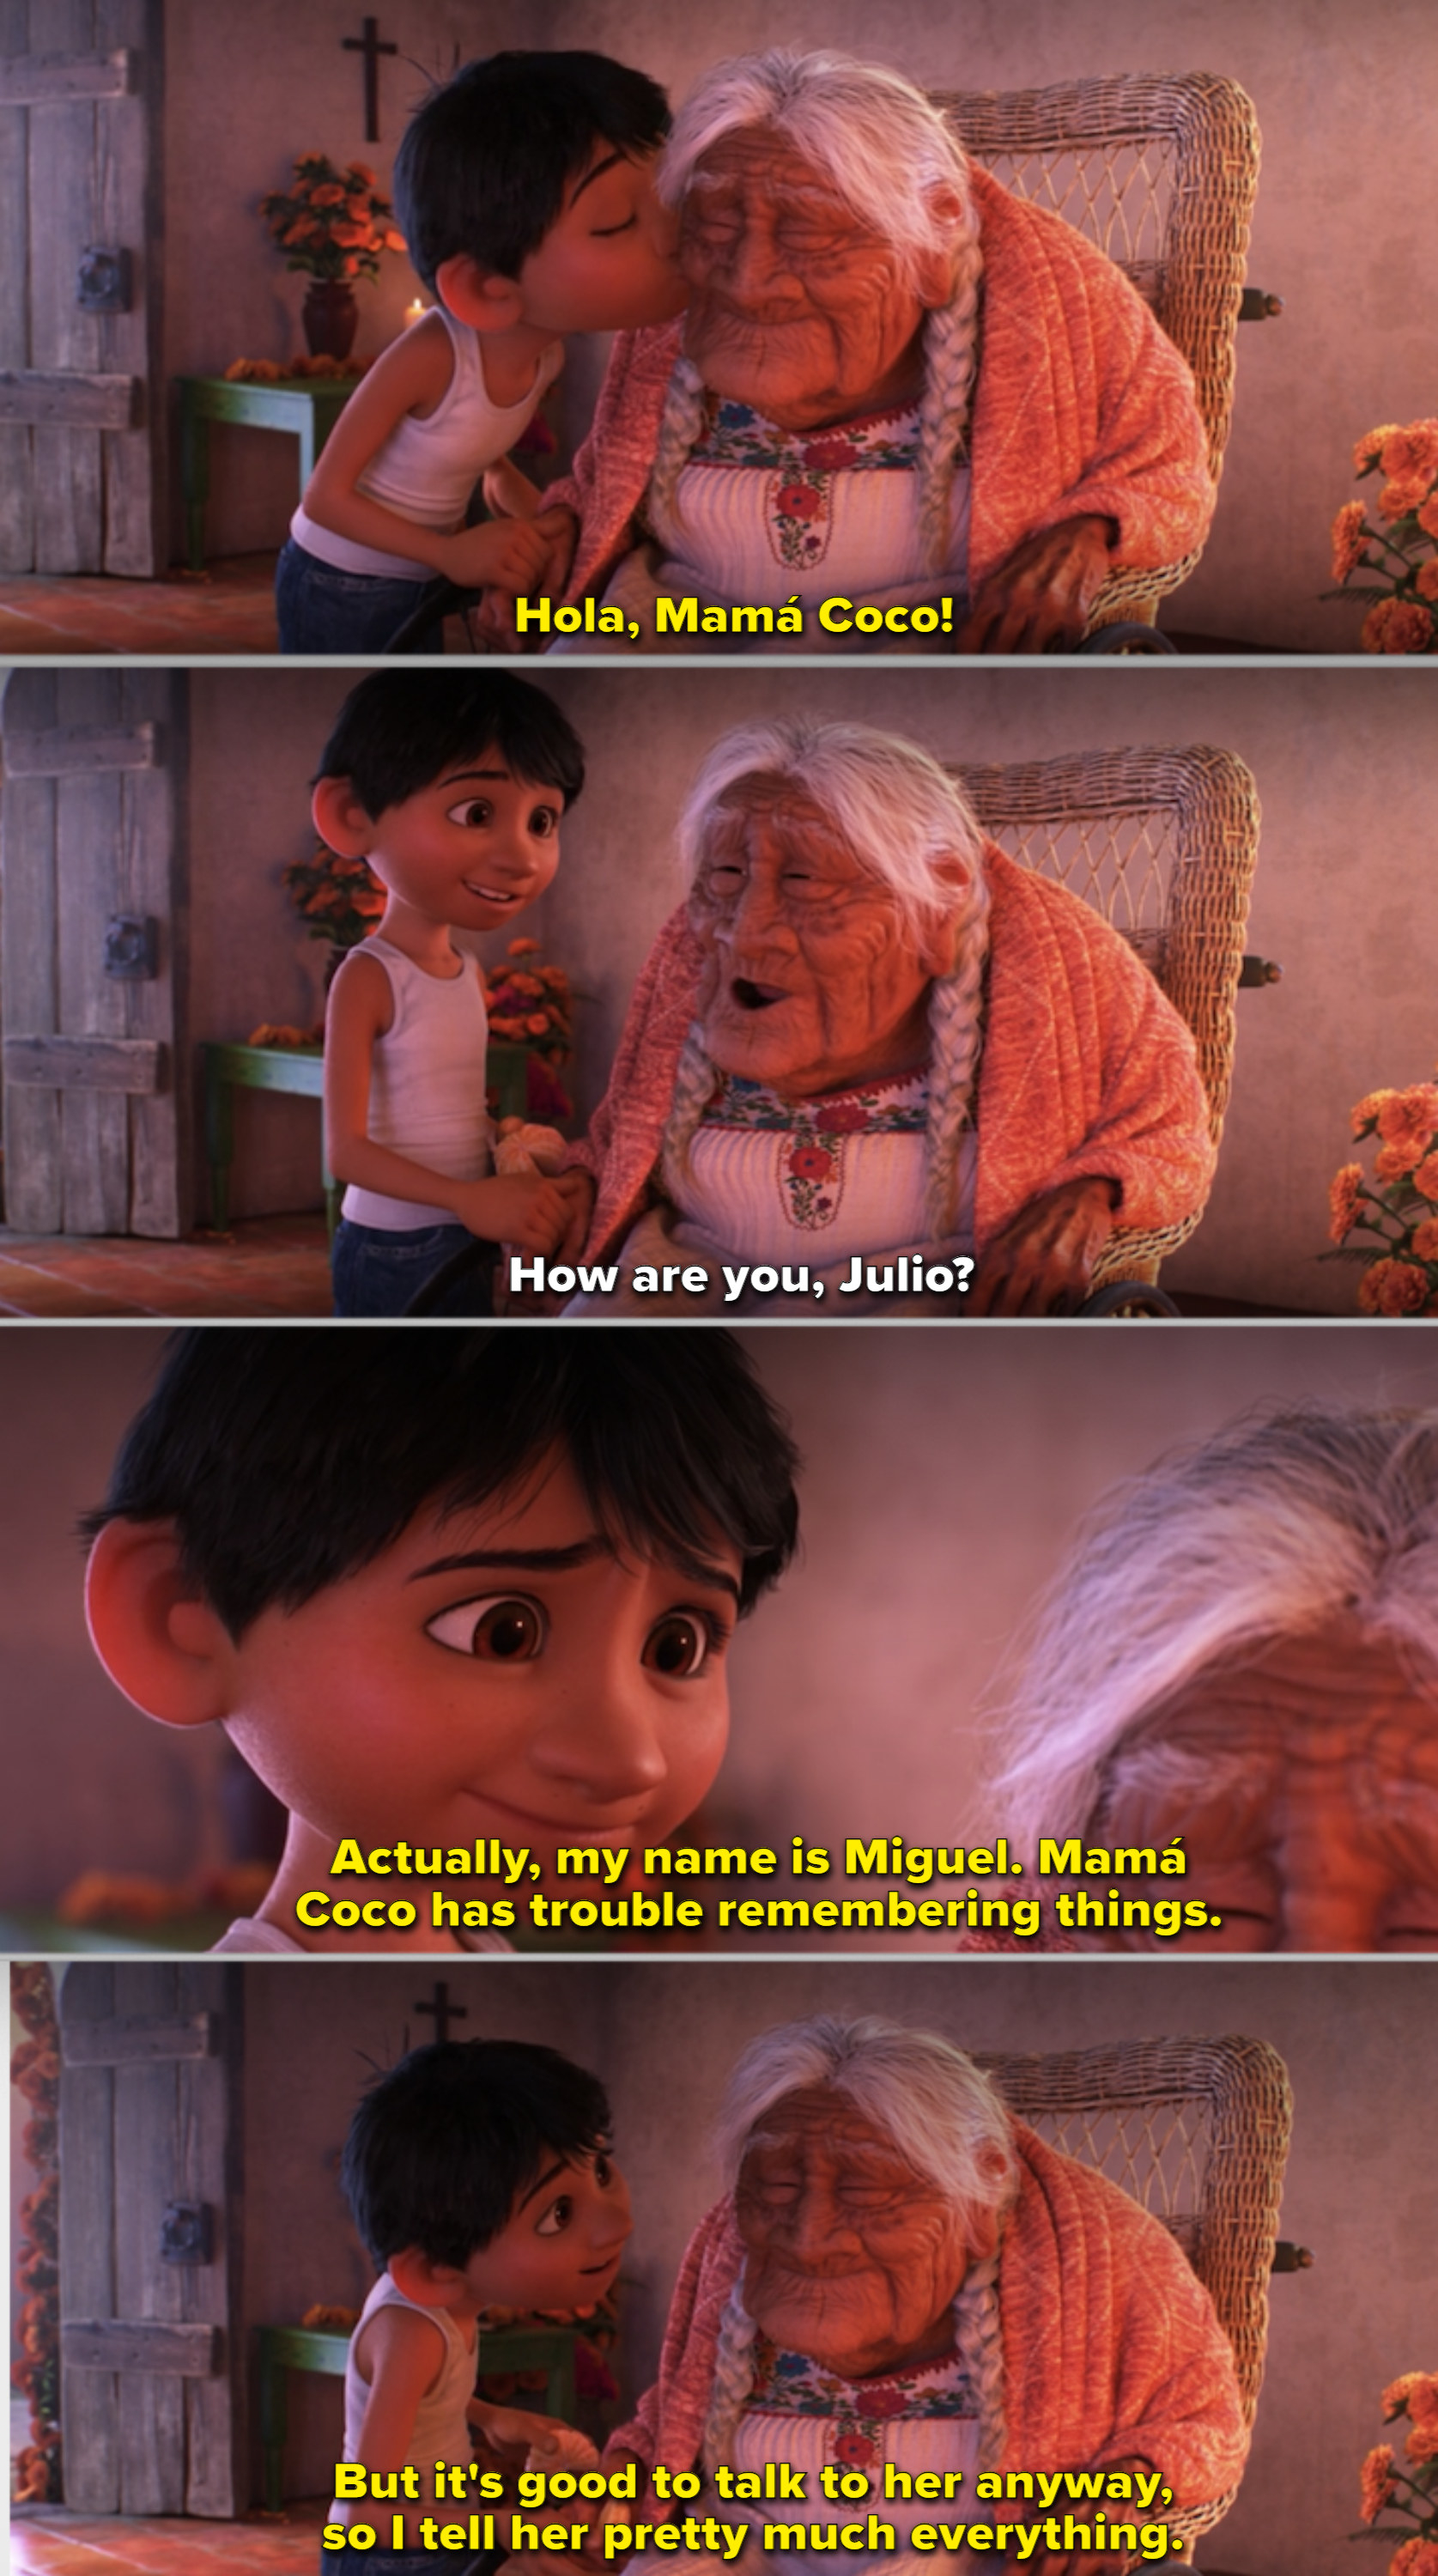 Miguel talking to Mamá Coco